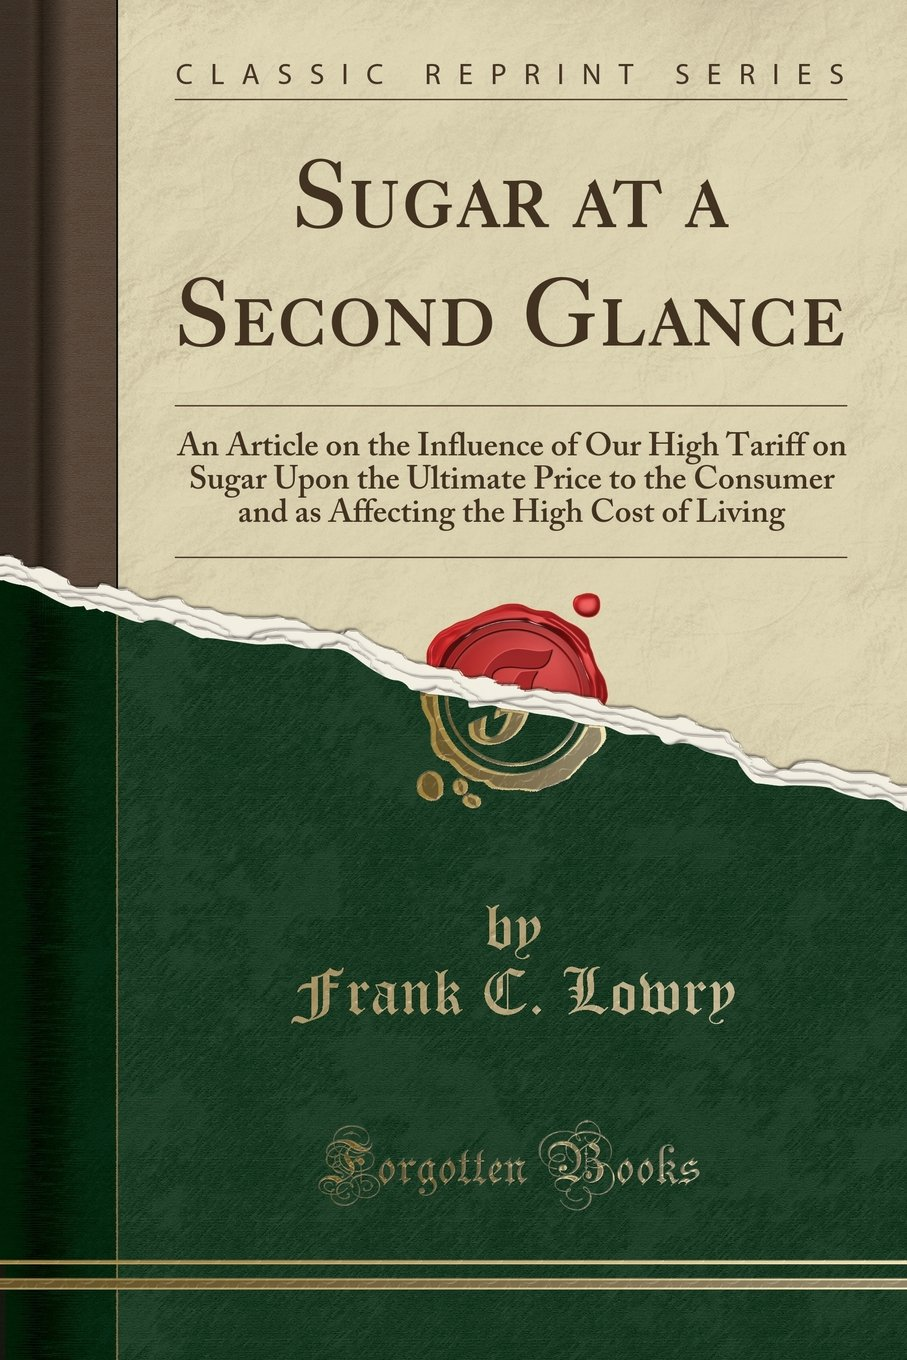 Sugar at a Second Glance: An Article on the Influence of Our High Tariff on Sugar Upon the Ultimate Price to the Consumer and as Affecting the High Cost of Living (Classic Reprint) pdf epub